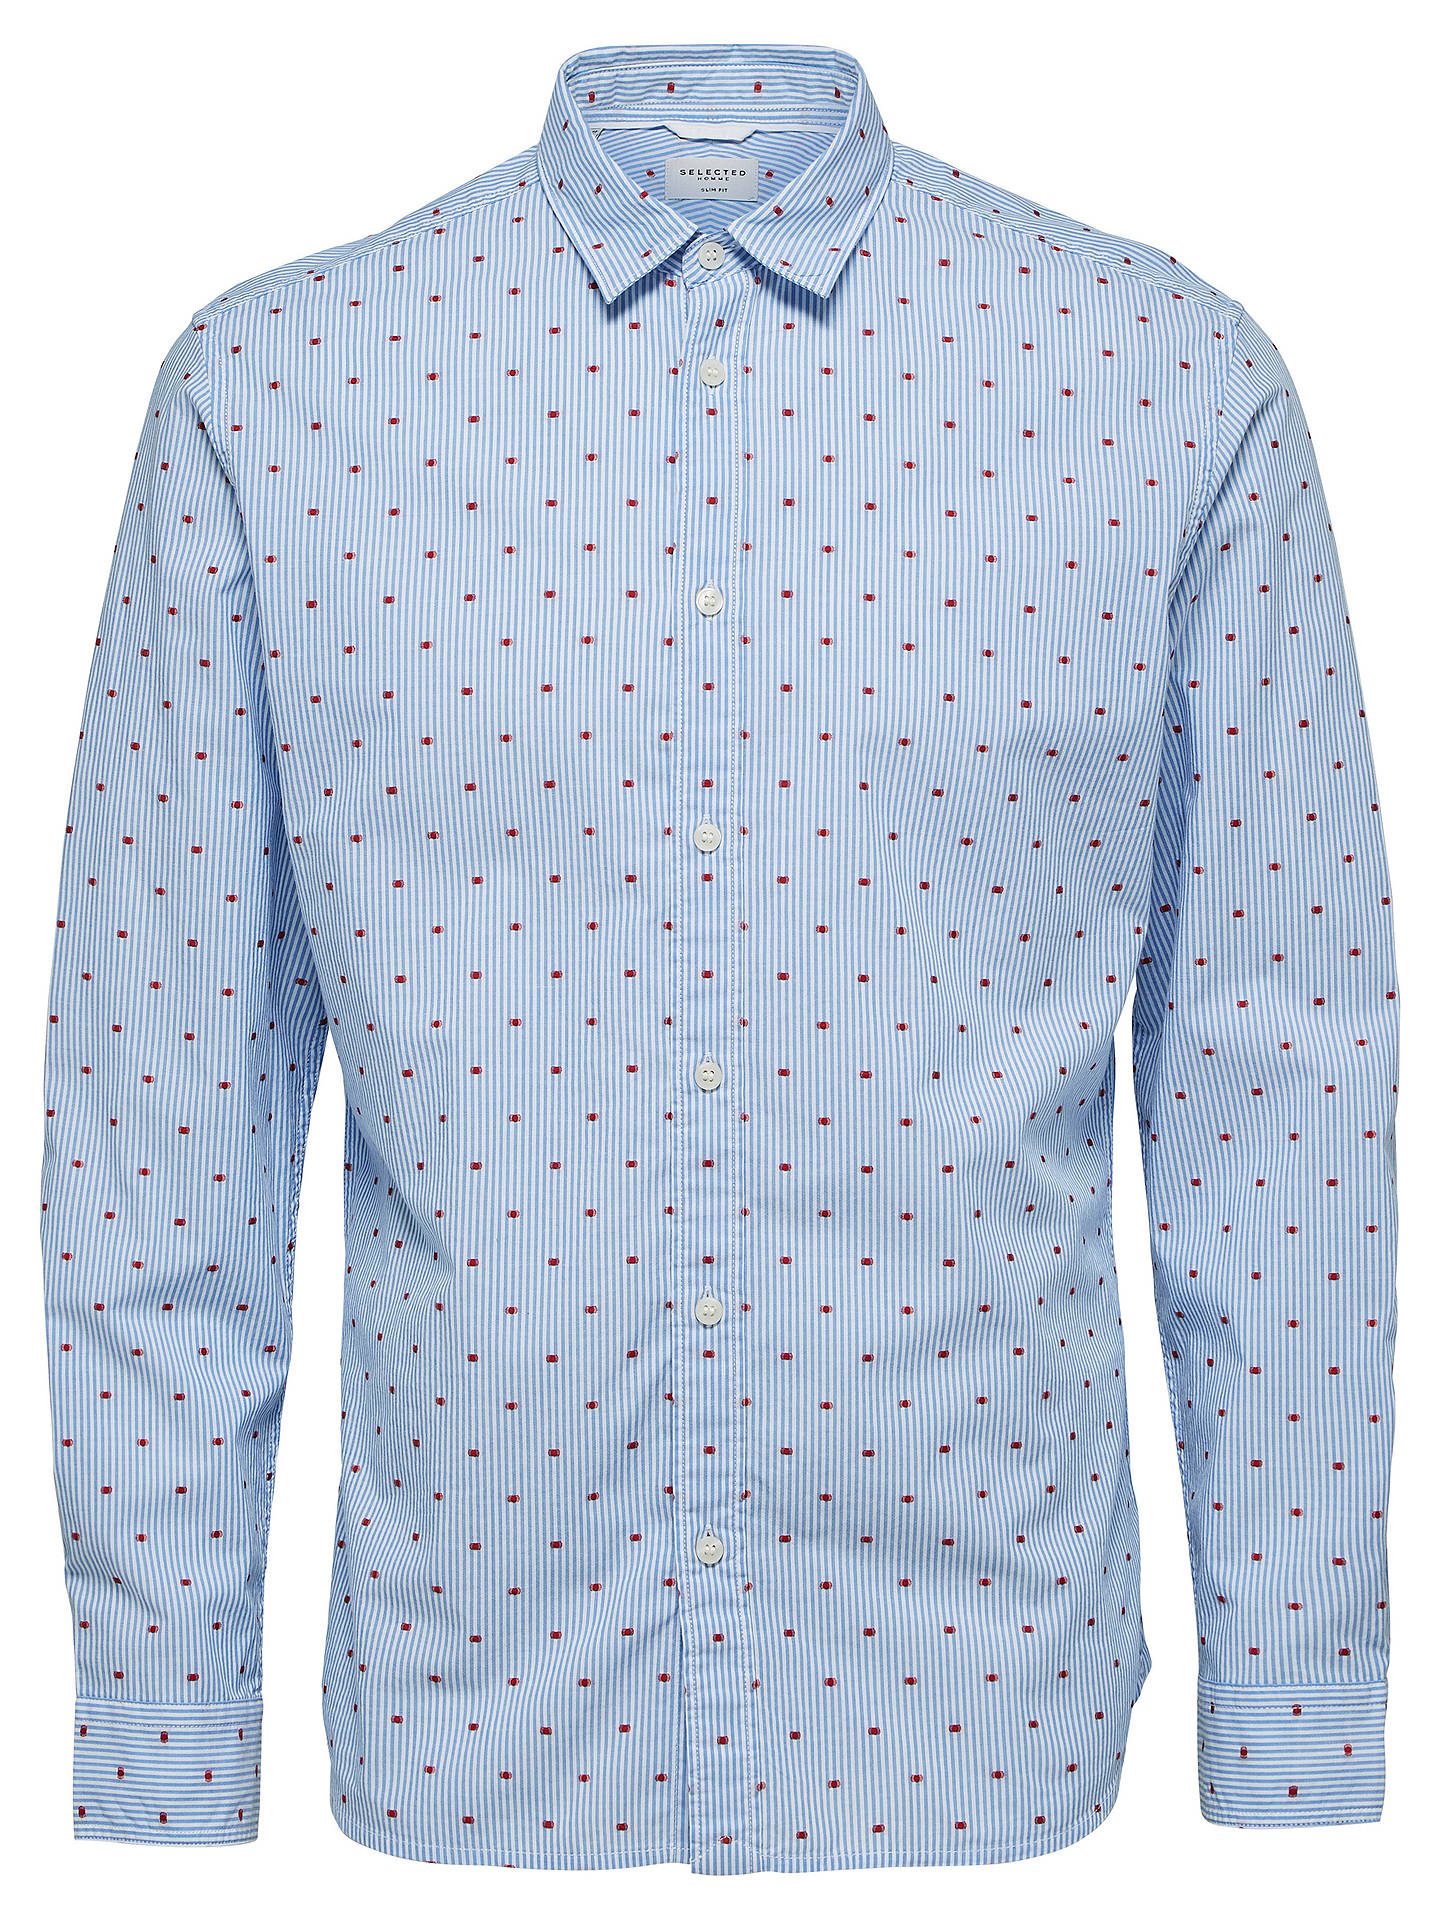 BuySelected Homme Monnie Long Sleeve Shirt, Blue, XL Online at johnlewis.com